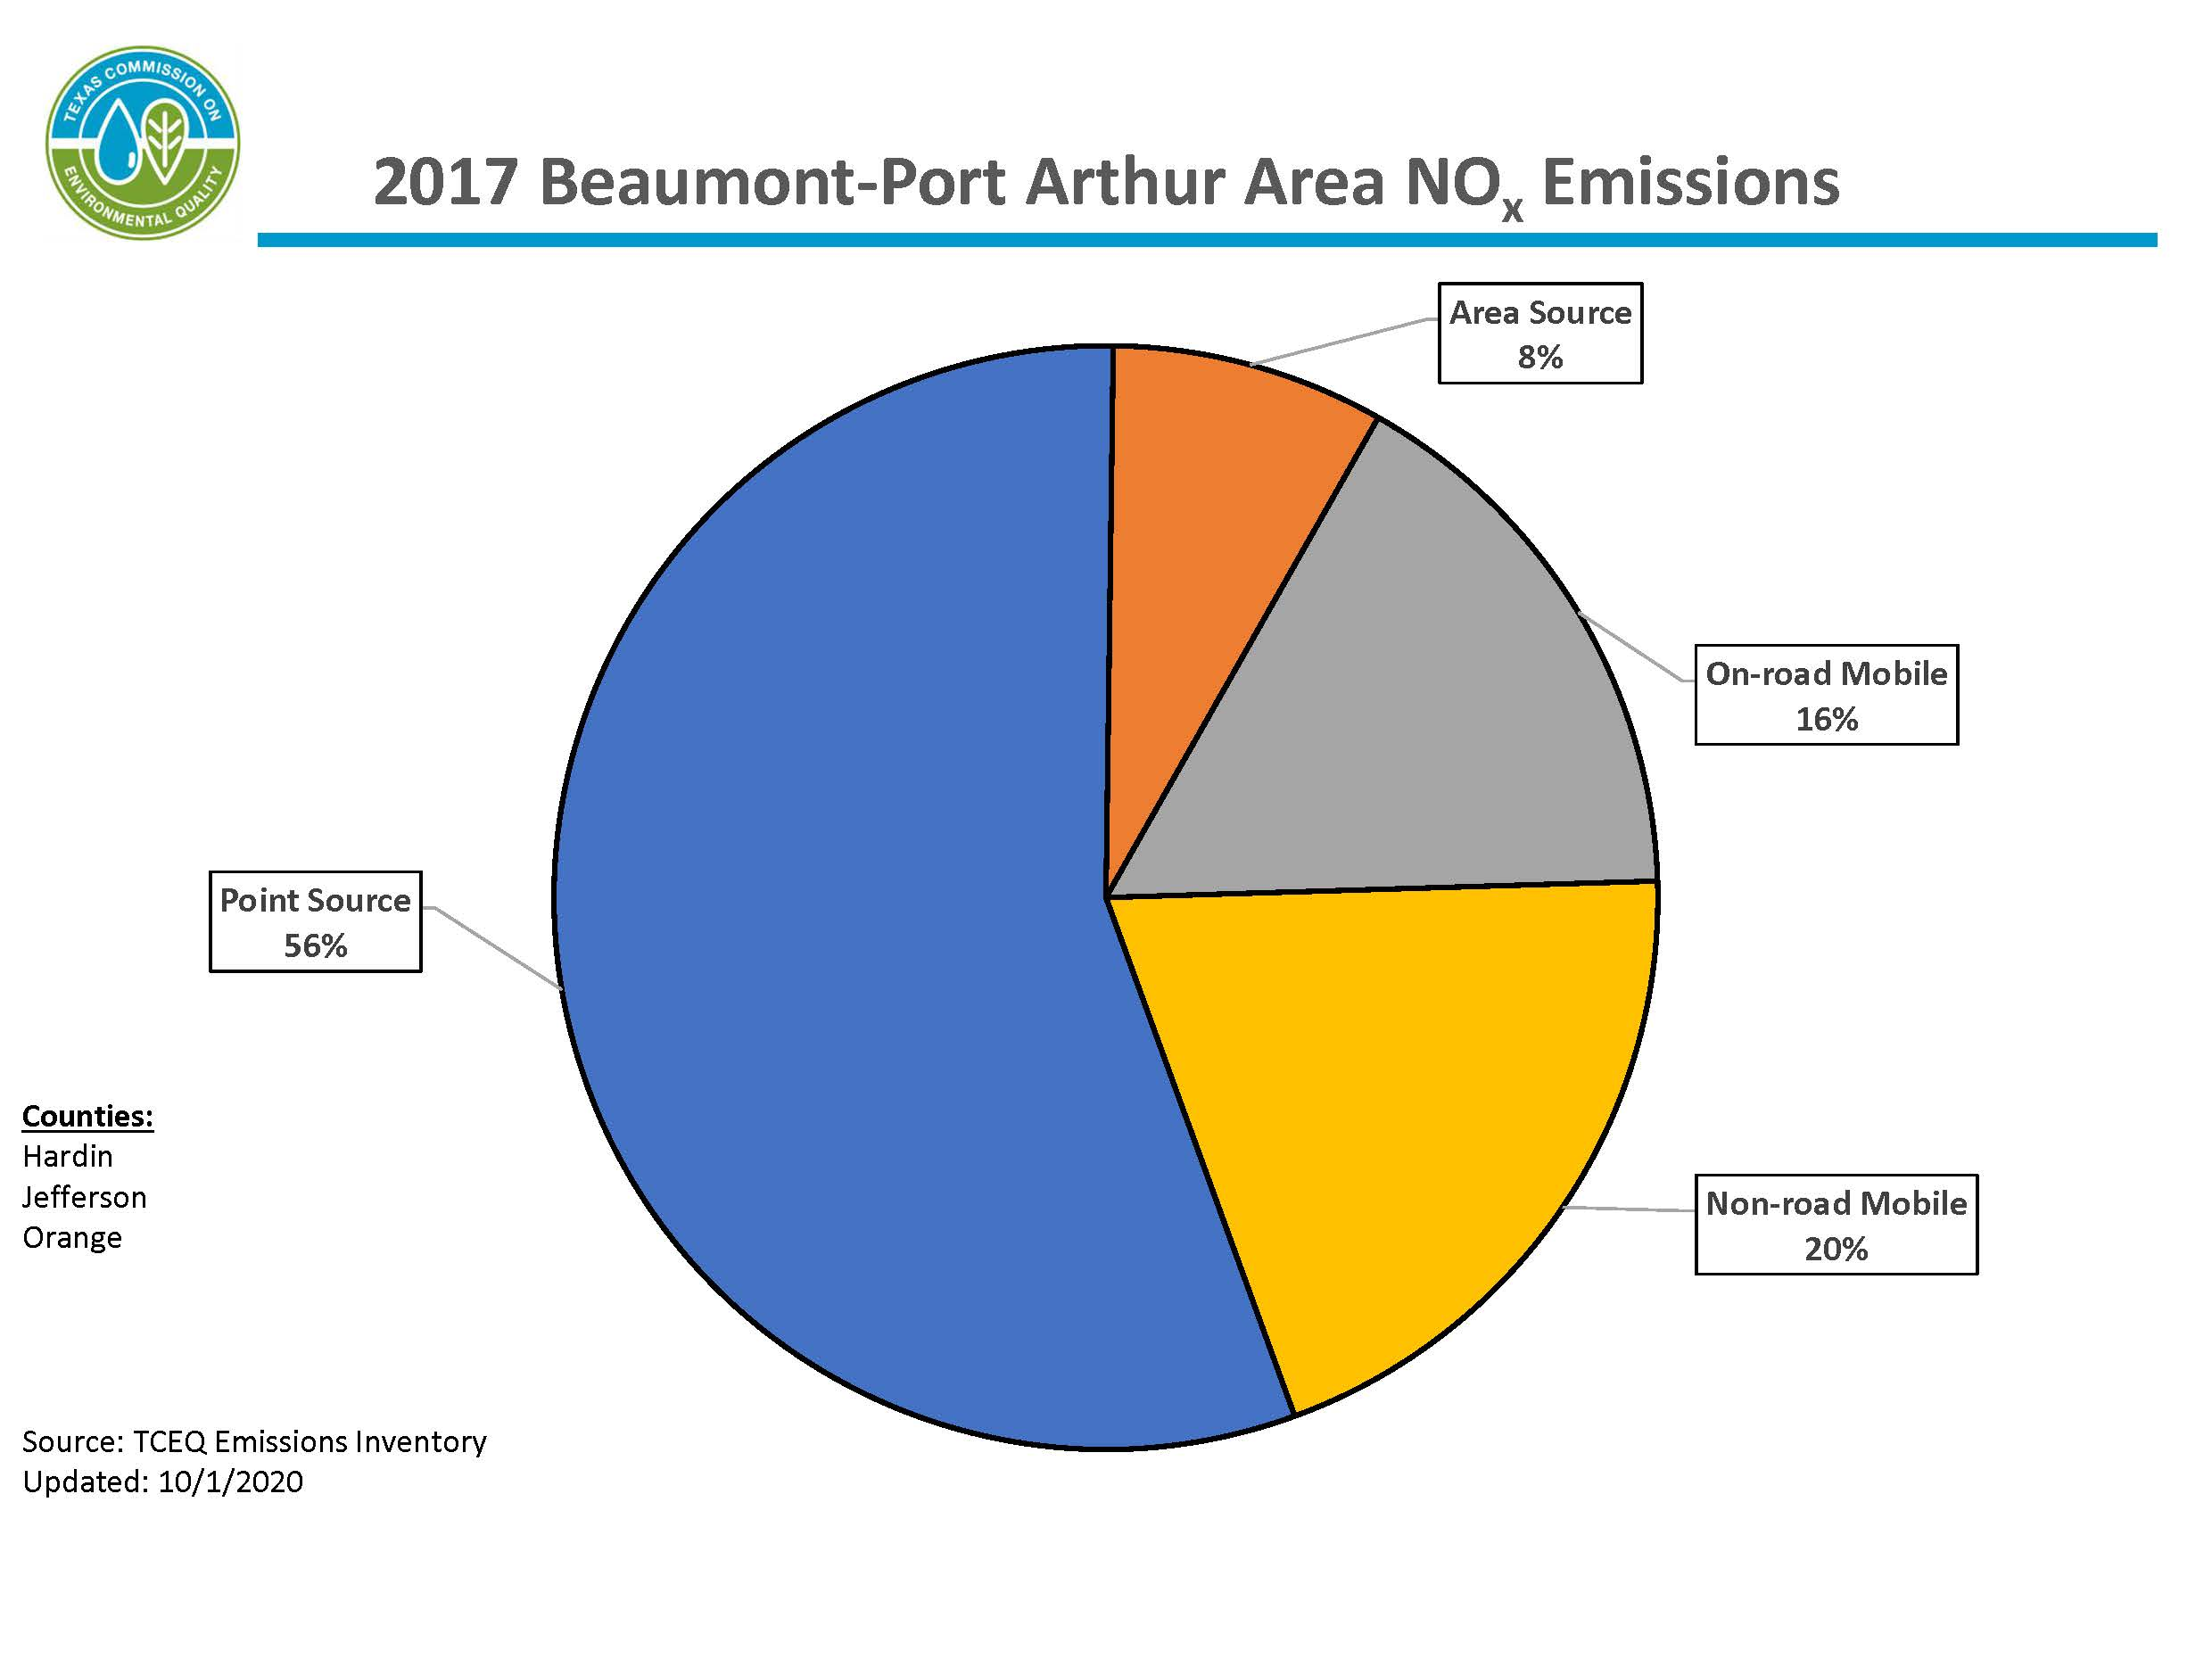 This chart represents calendar year 2017 nitrogen oxide emissions for the Beaumont-Port Arthur area. The Beaumont-Port Arthur area includes Hardin, Jefferson, and Orange counties. 58 percent of emissions are from point sources, 34 percent of emissions are from mobile sources, and 8 percent of emissions are from area sources.